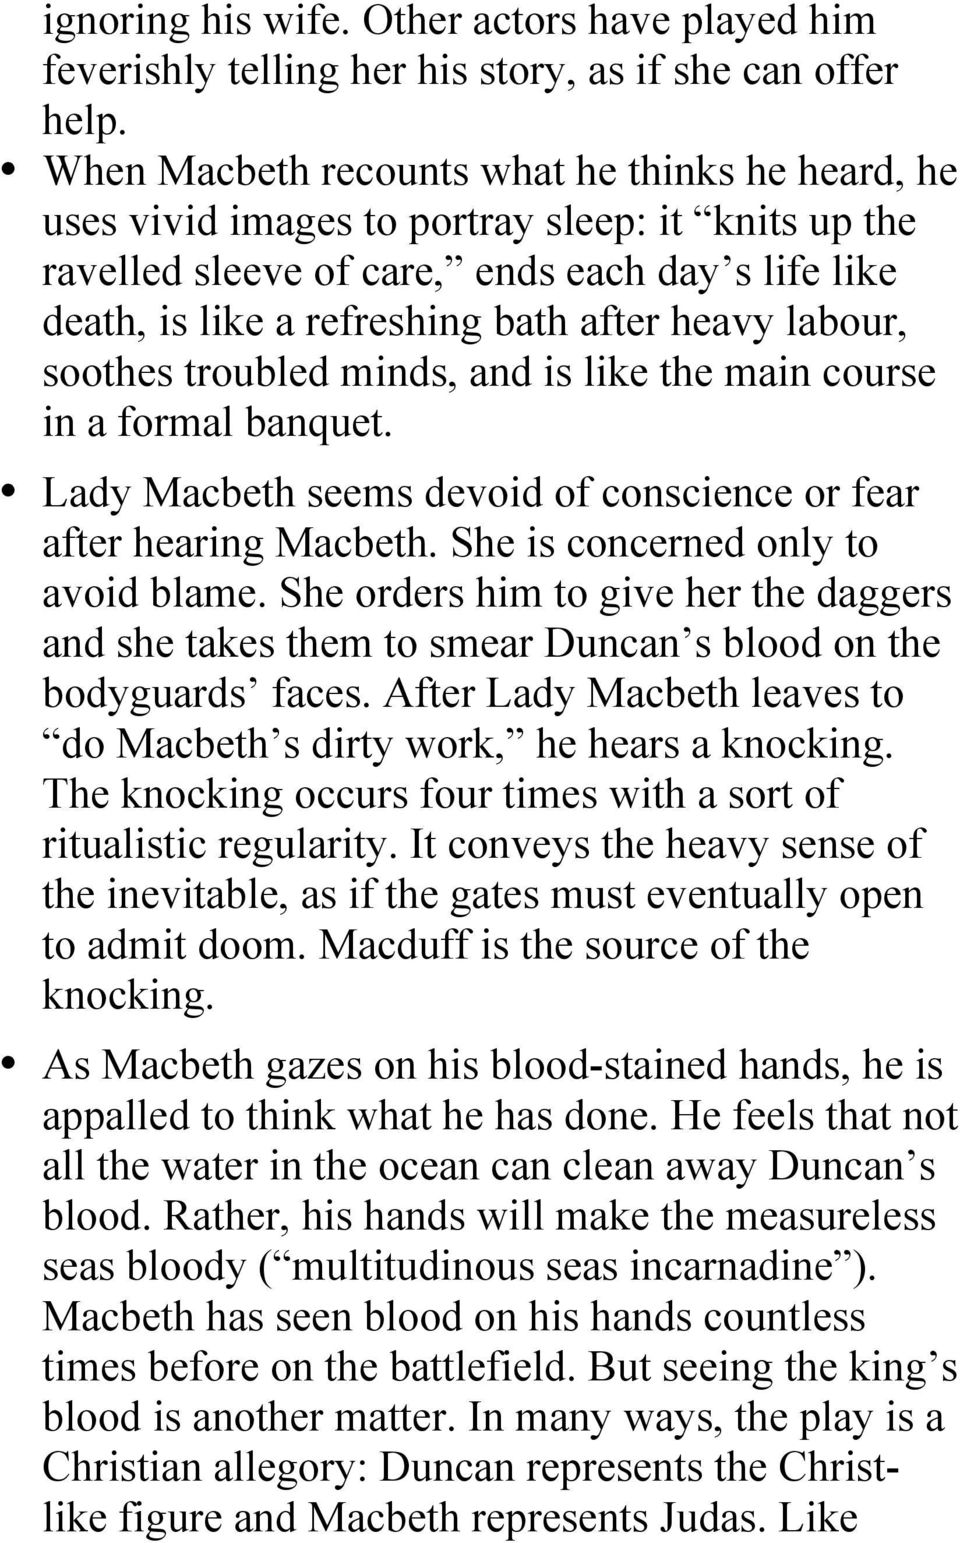 labour, soothes troubled minds, and is like the main course in a formal banquet. Lady Macbeth seems devoid of conscience or fear after hearing Macbeth. She is concerned only to avoid blame.